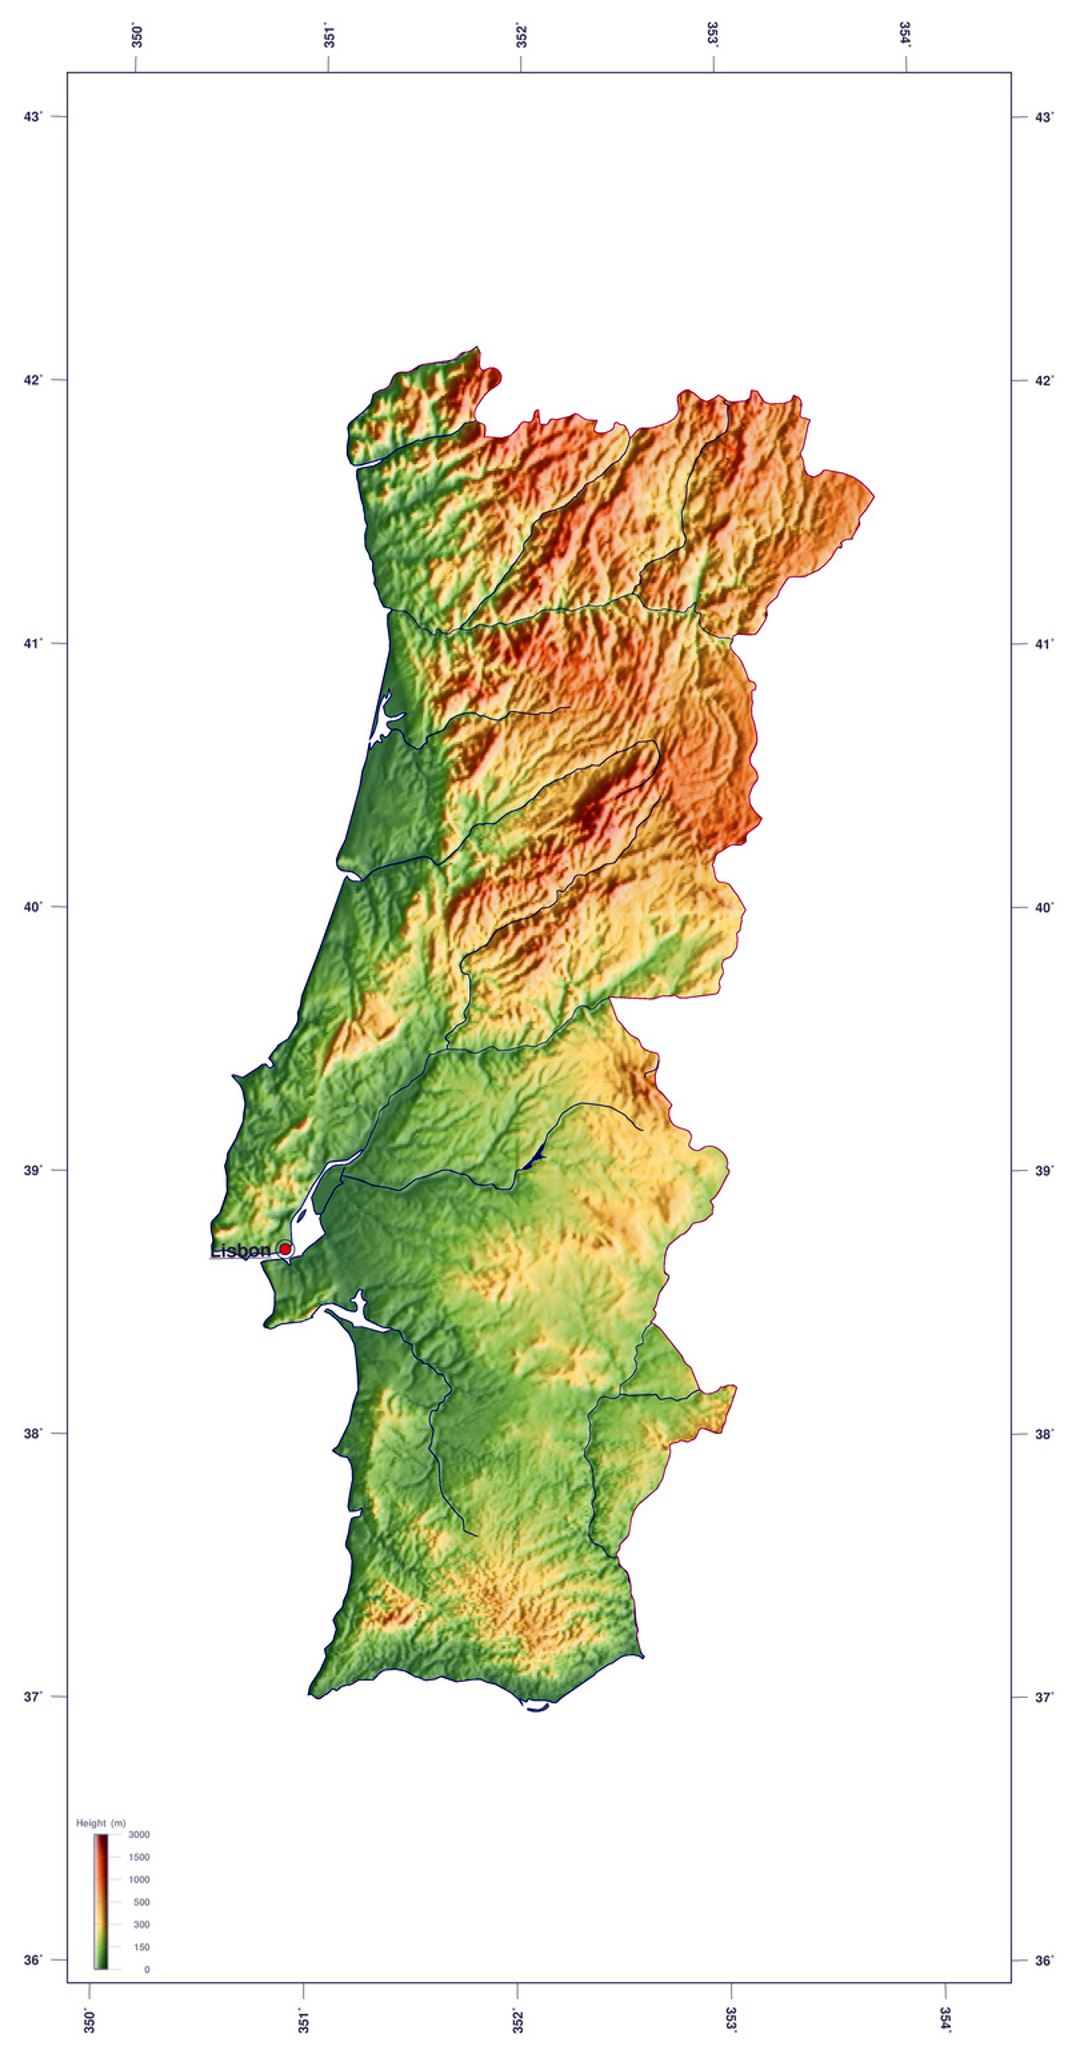 Detailed elevation map of Portugal